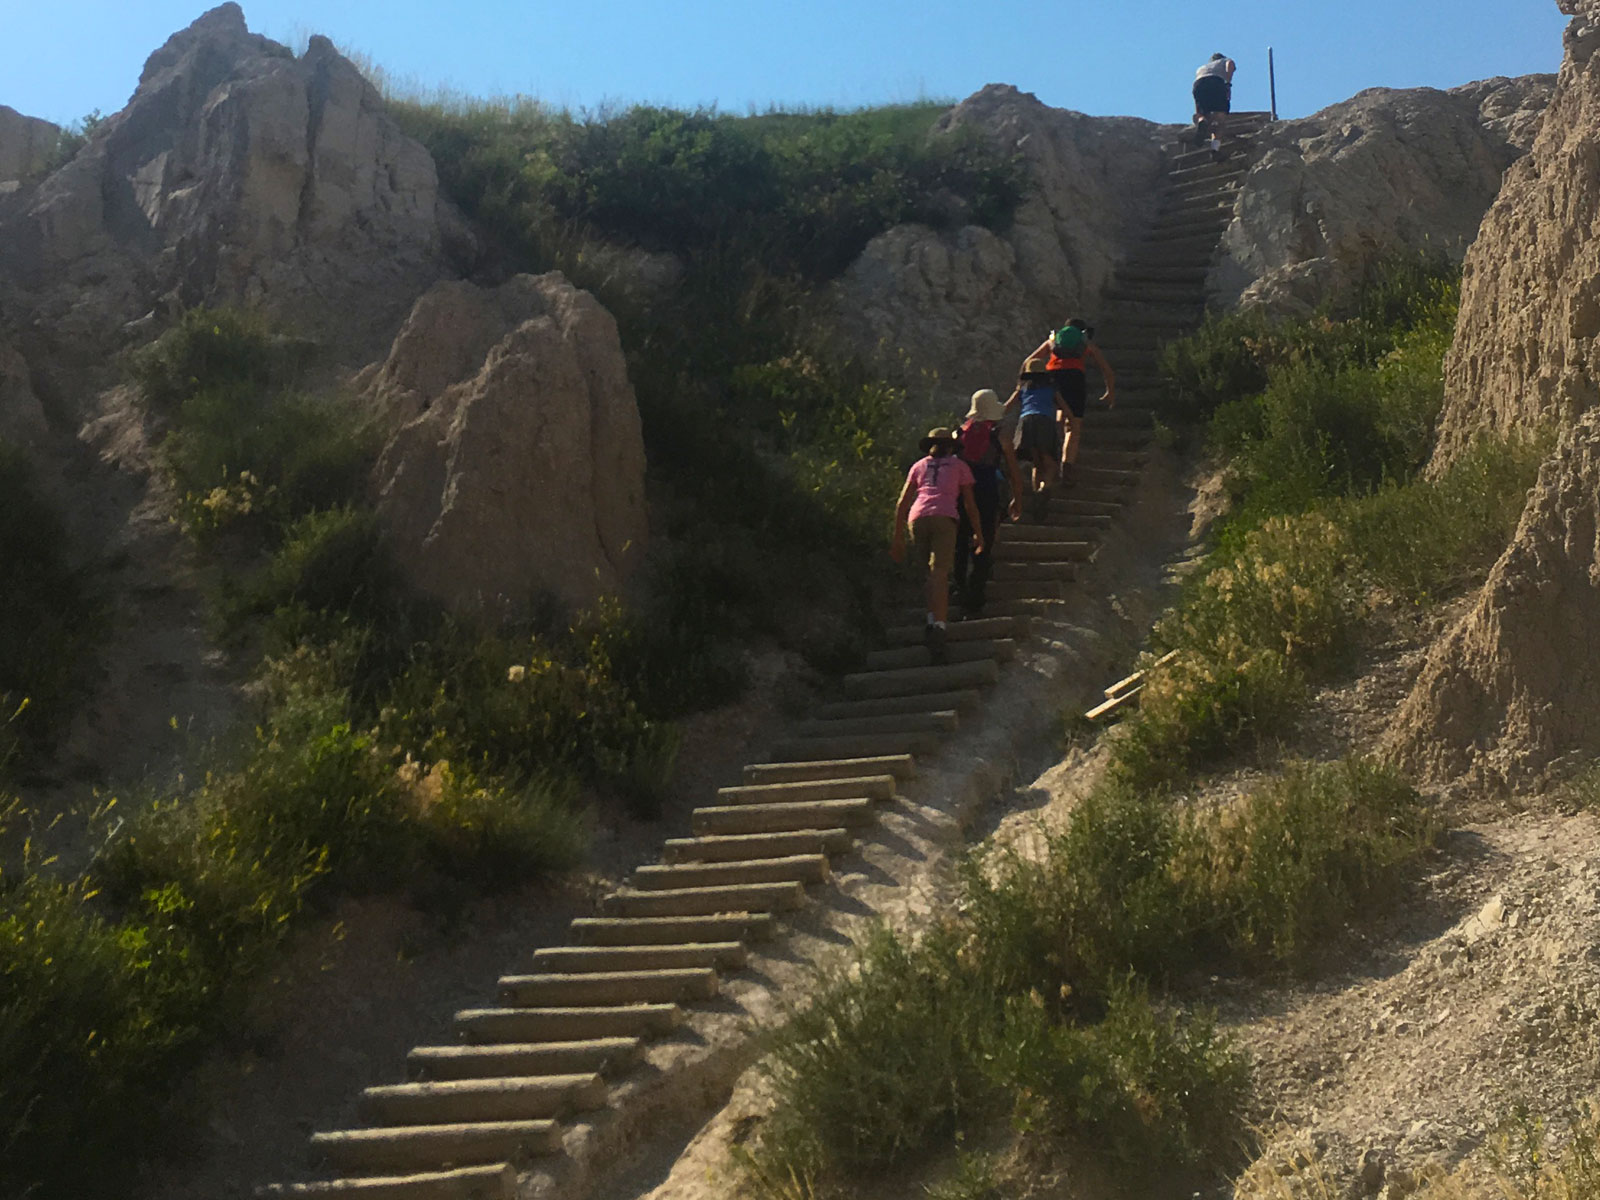 Family climbing up the log ladder on the Notch Trail in the Badlands National Park in South Dakota